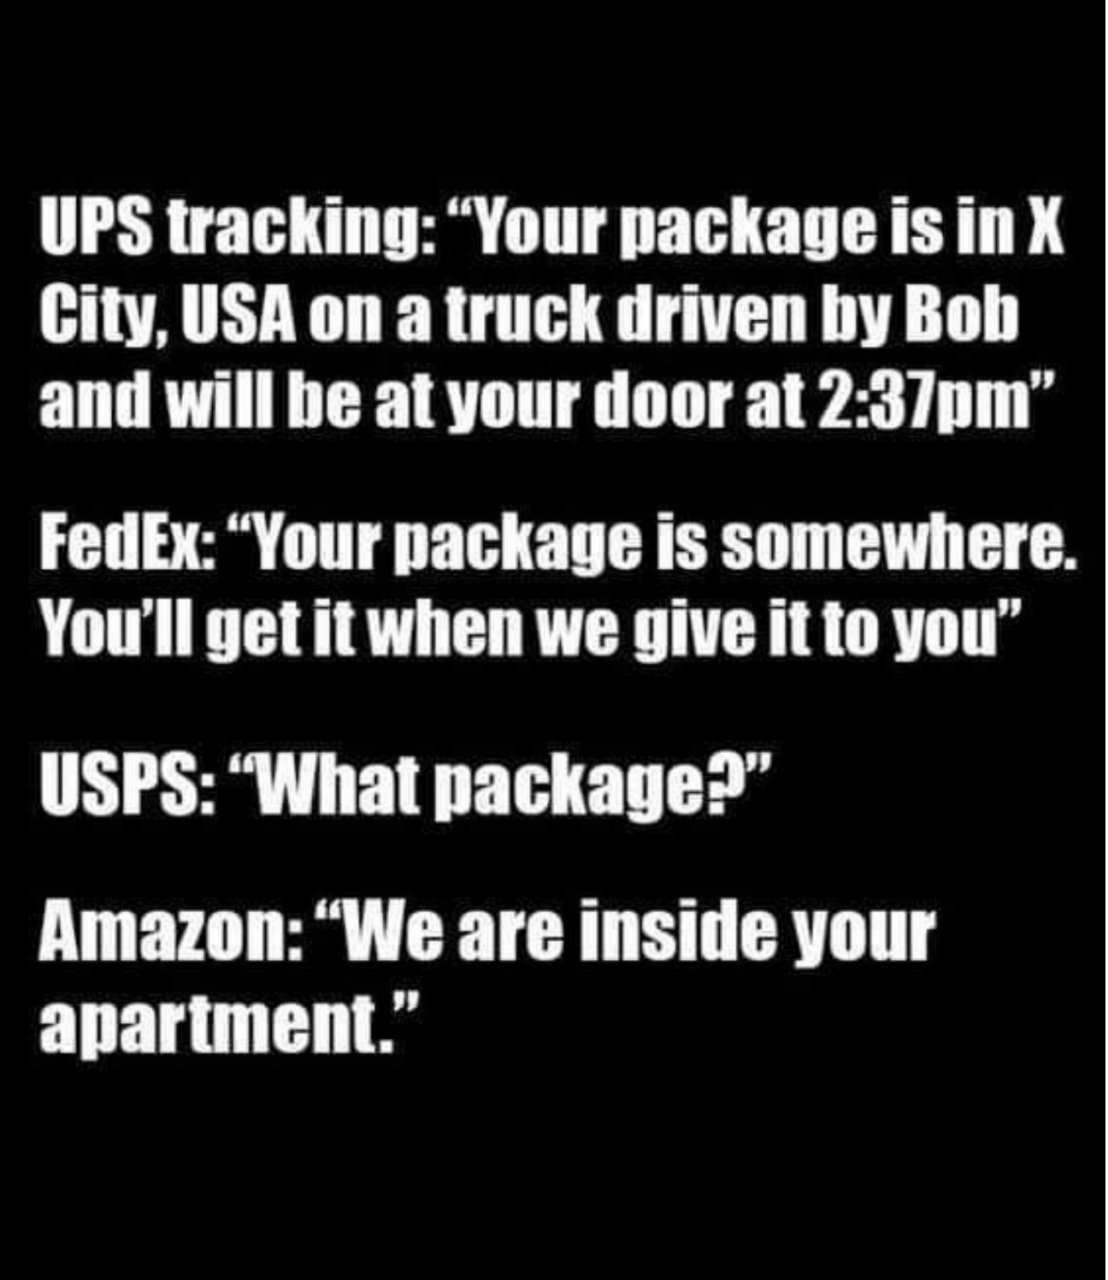 Package tracking | BrownCafe - UPSers talking about UPS